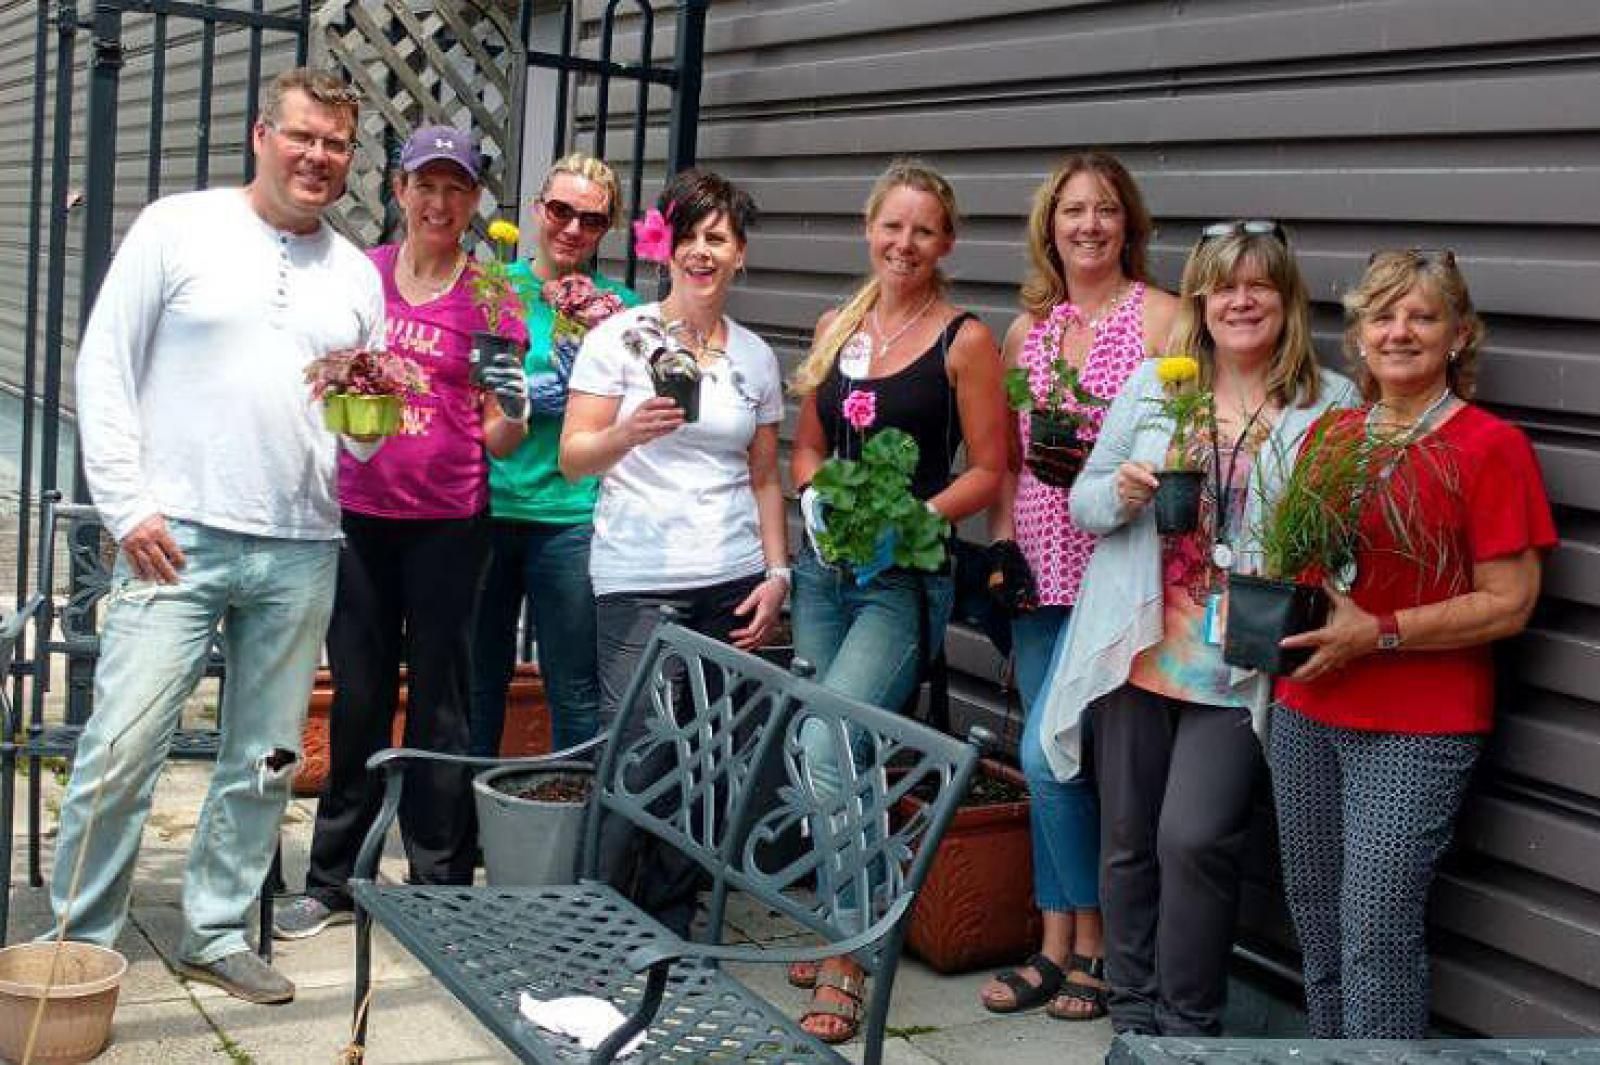 LO and Connon support terrace garden project